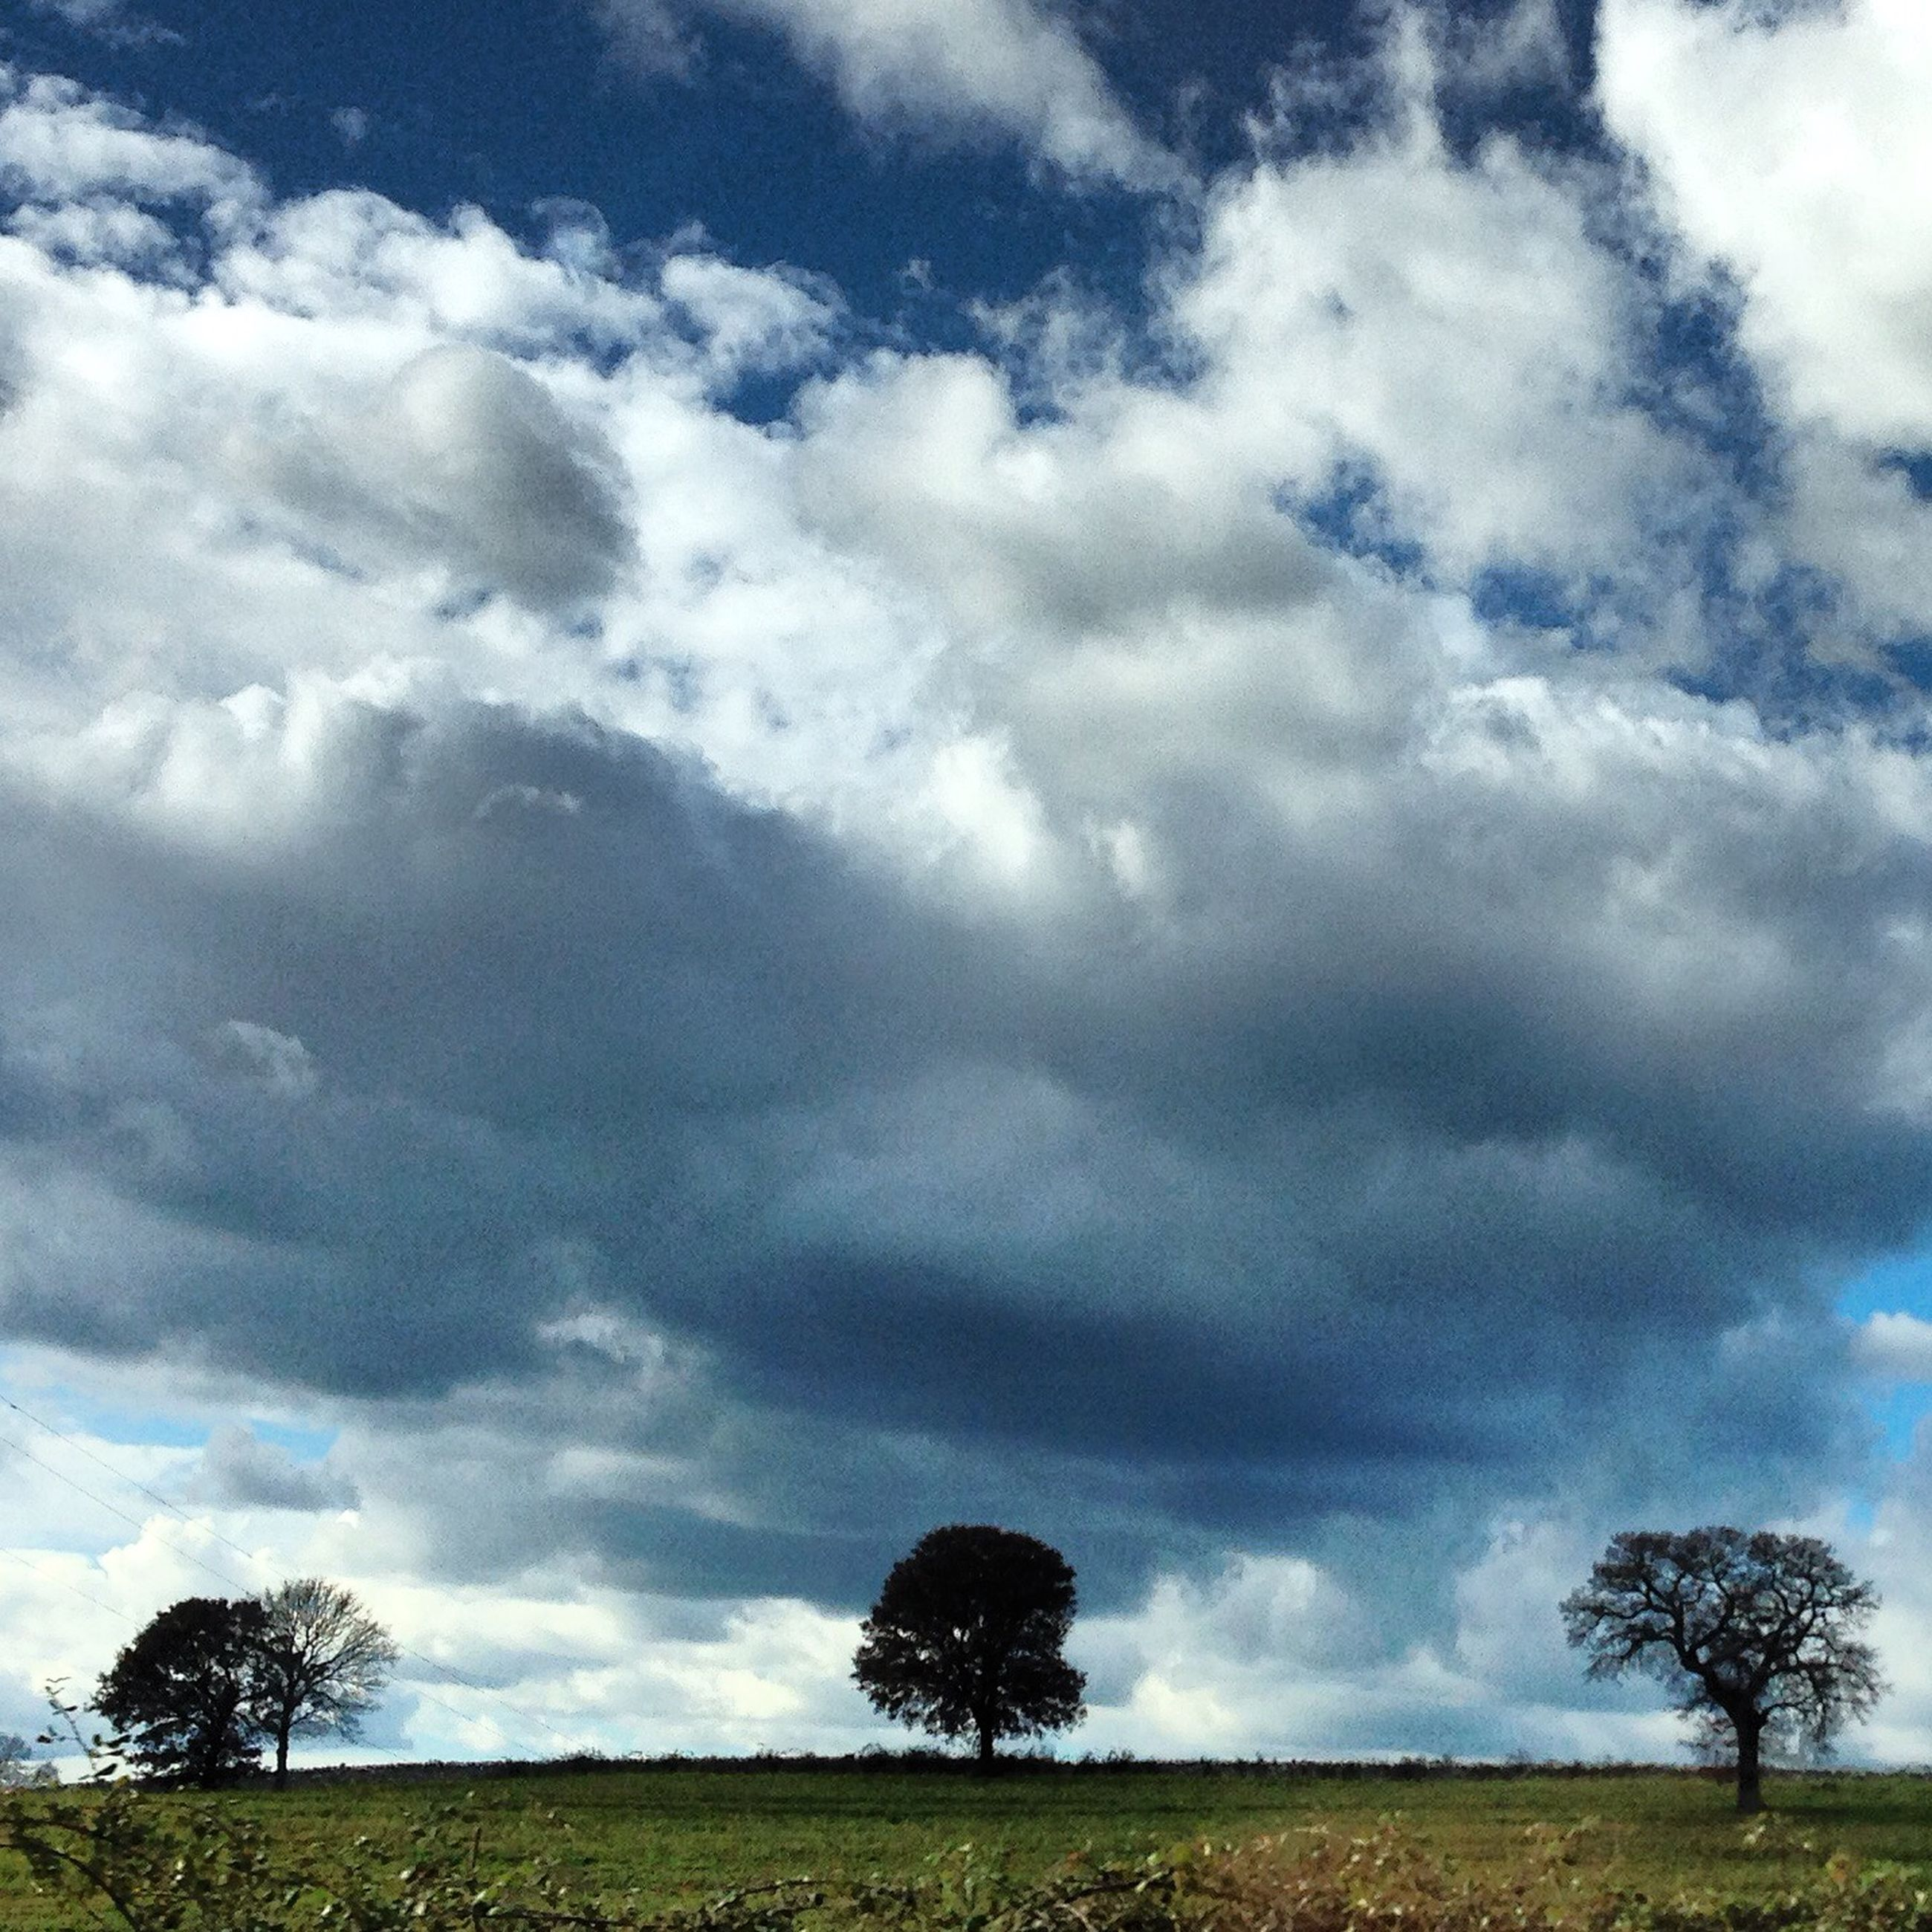 sky, tree, tranquility, tranquil scene, cloud - sky, scenics, field, beauty in nature, landscape, grass, cloudy, nature, cloud, growth, idyllic, non-urban scene, outdoors, no people, grassy, day